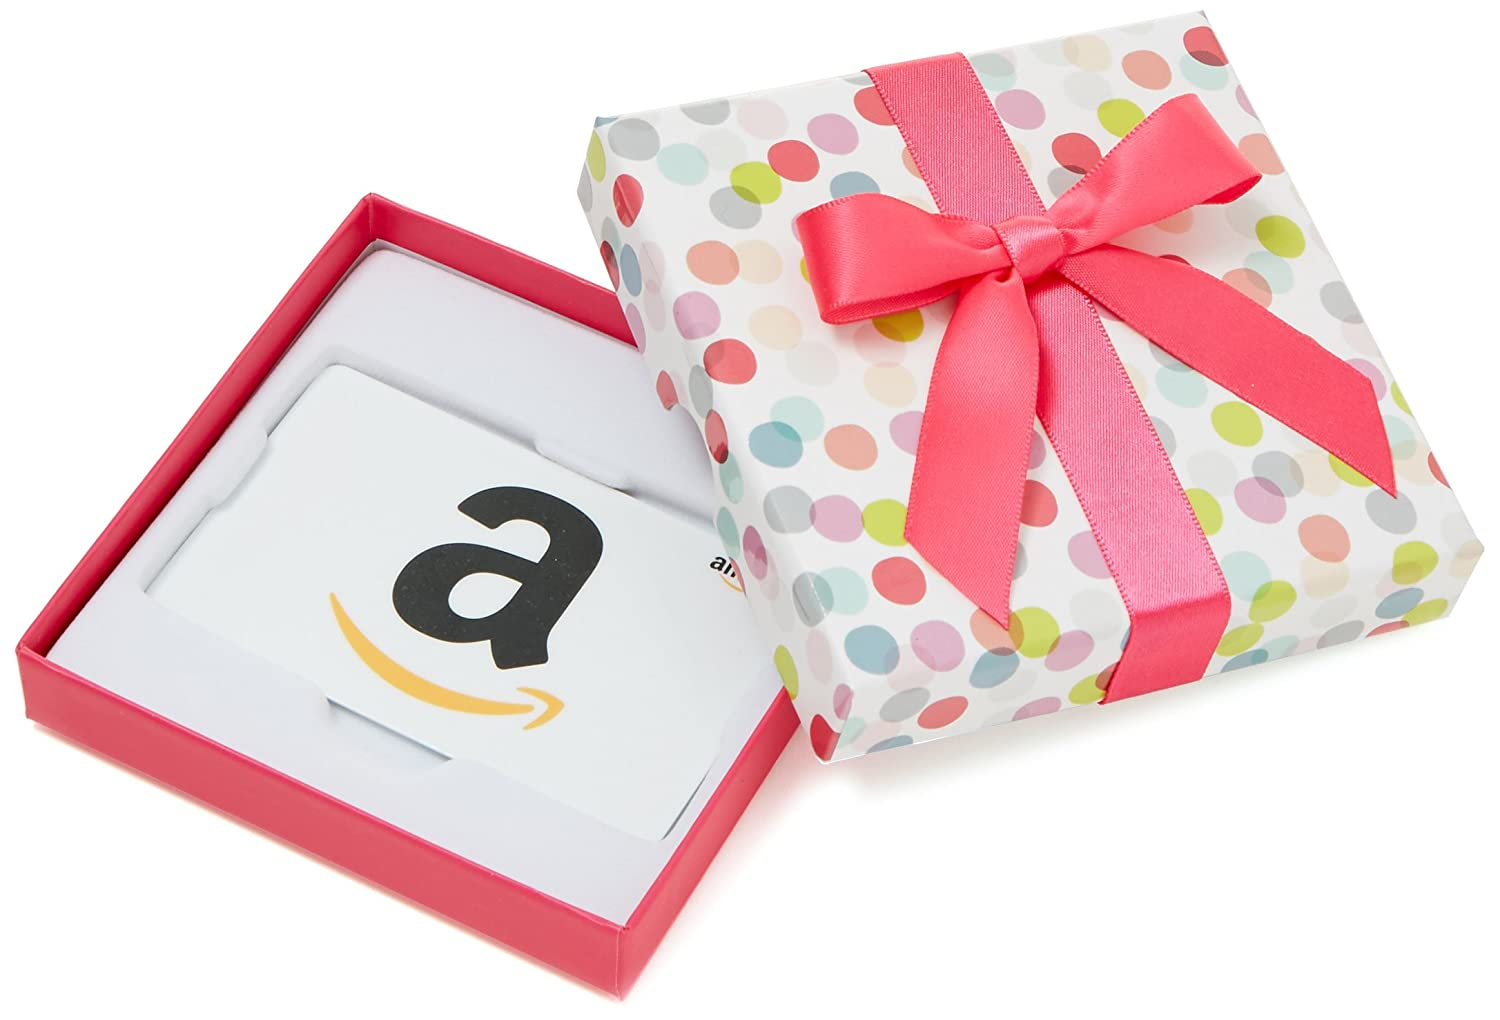 Amazon.com Gift Card in a Dot Kasten (Classic White Card Design)